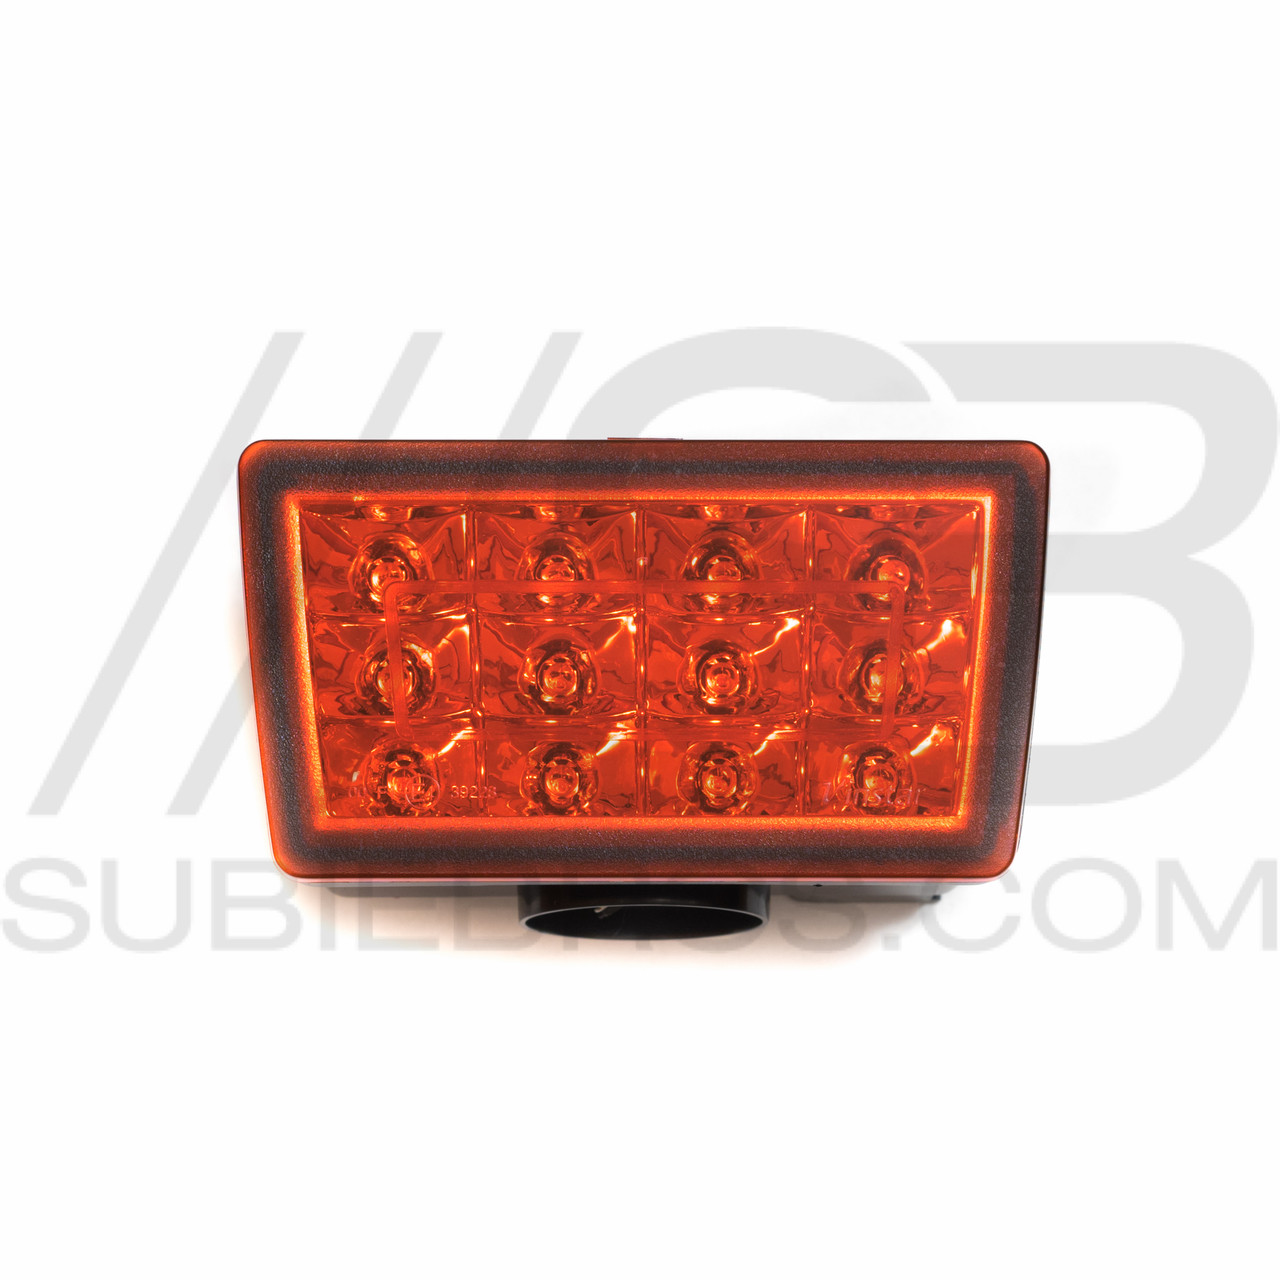 hight resolution of f1 style led rear fog light red clear red smoked matte black subie bros